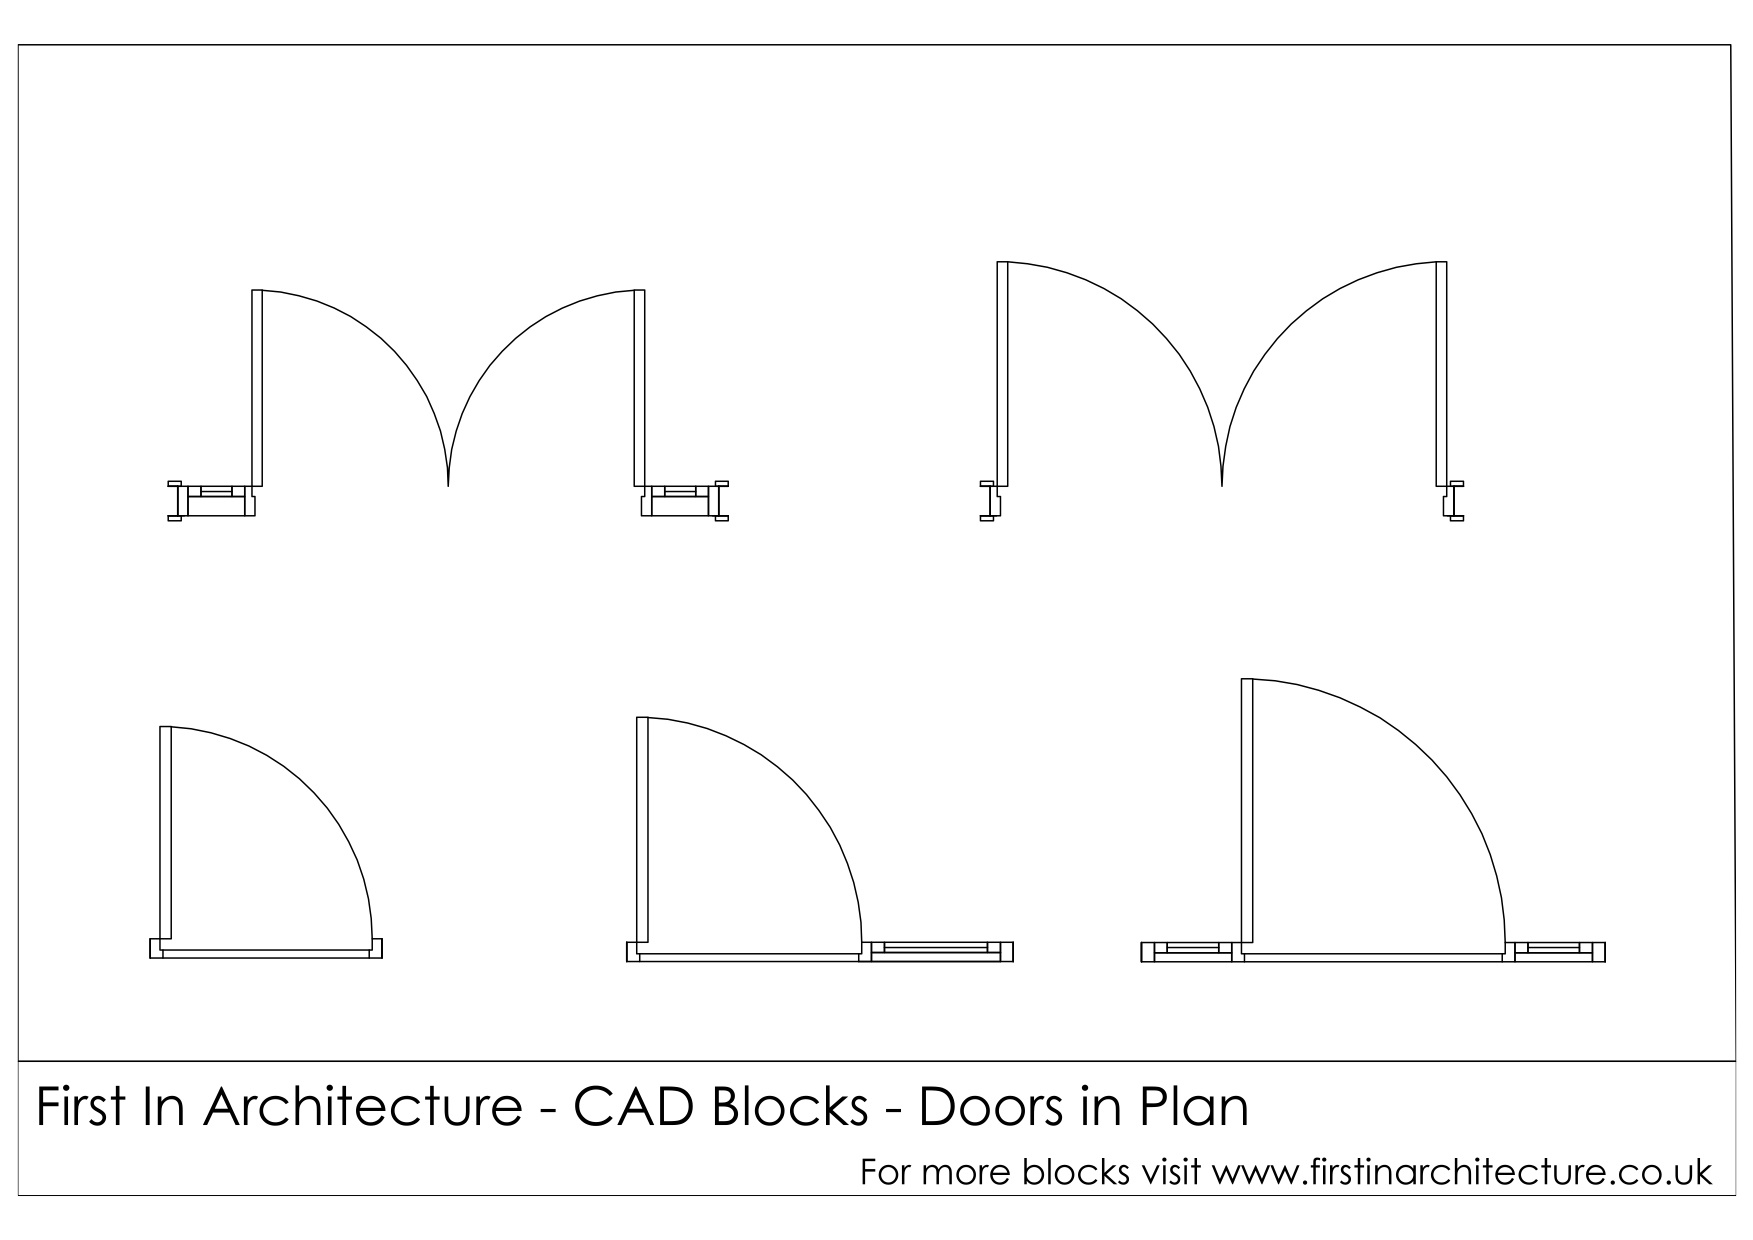 free cad blocks door elevationsplans first in architecture